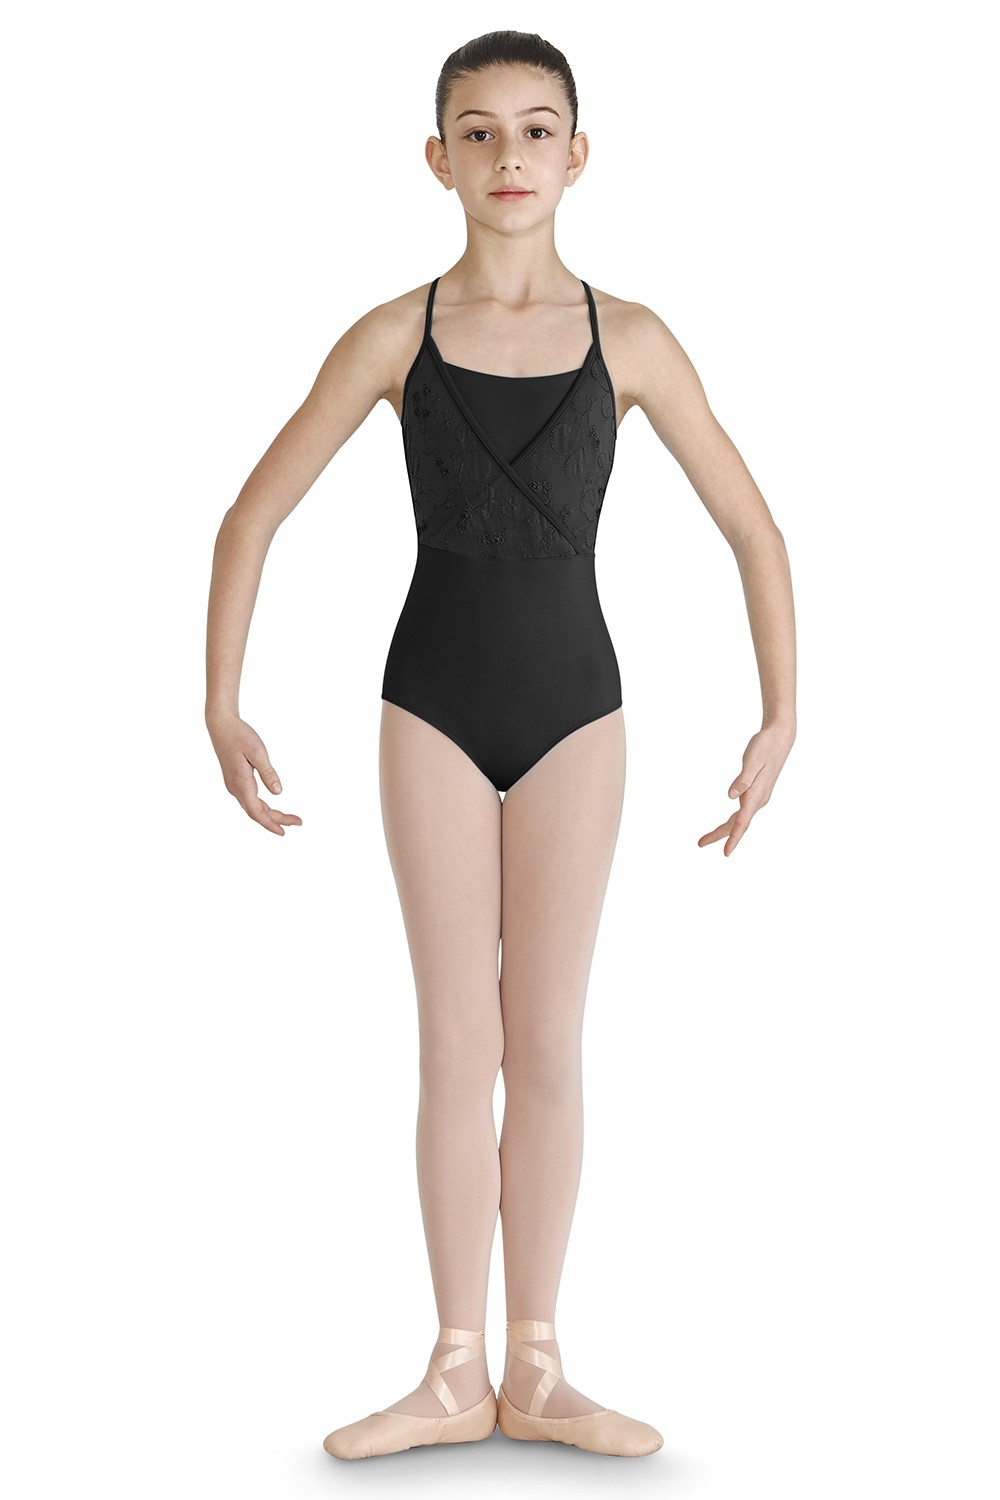 Fenouil Children's Dance Leotards